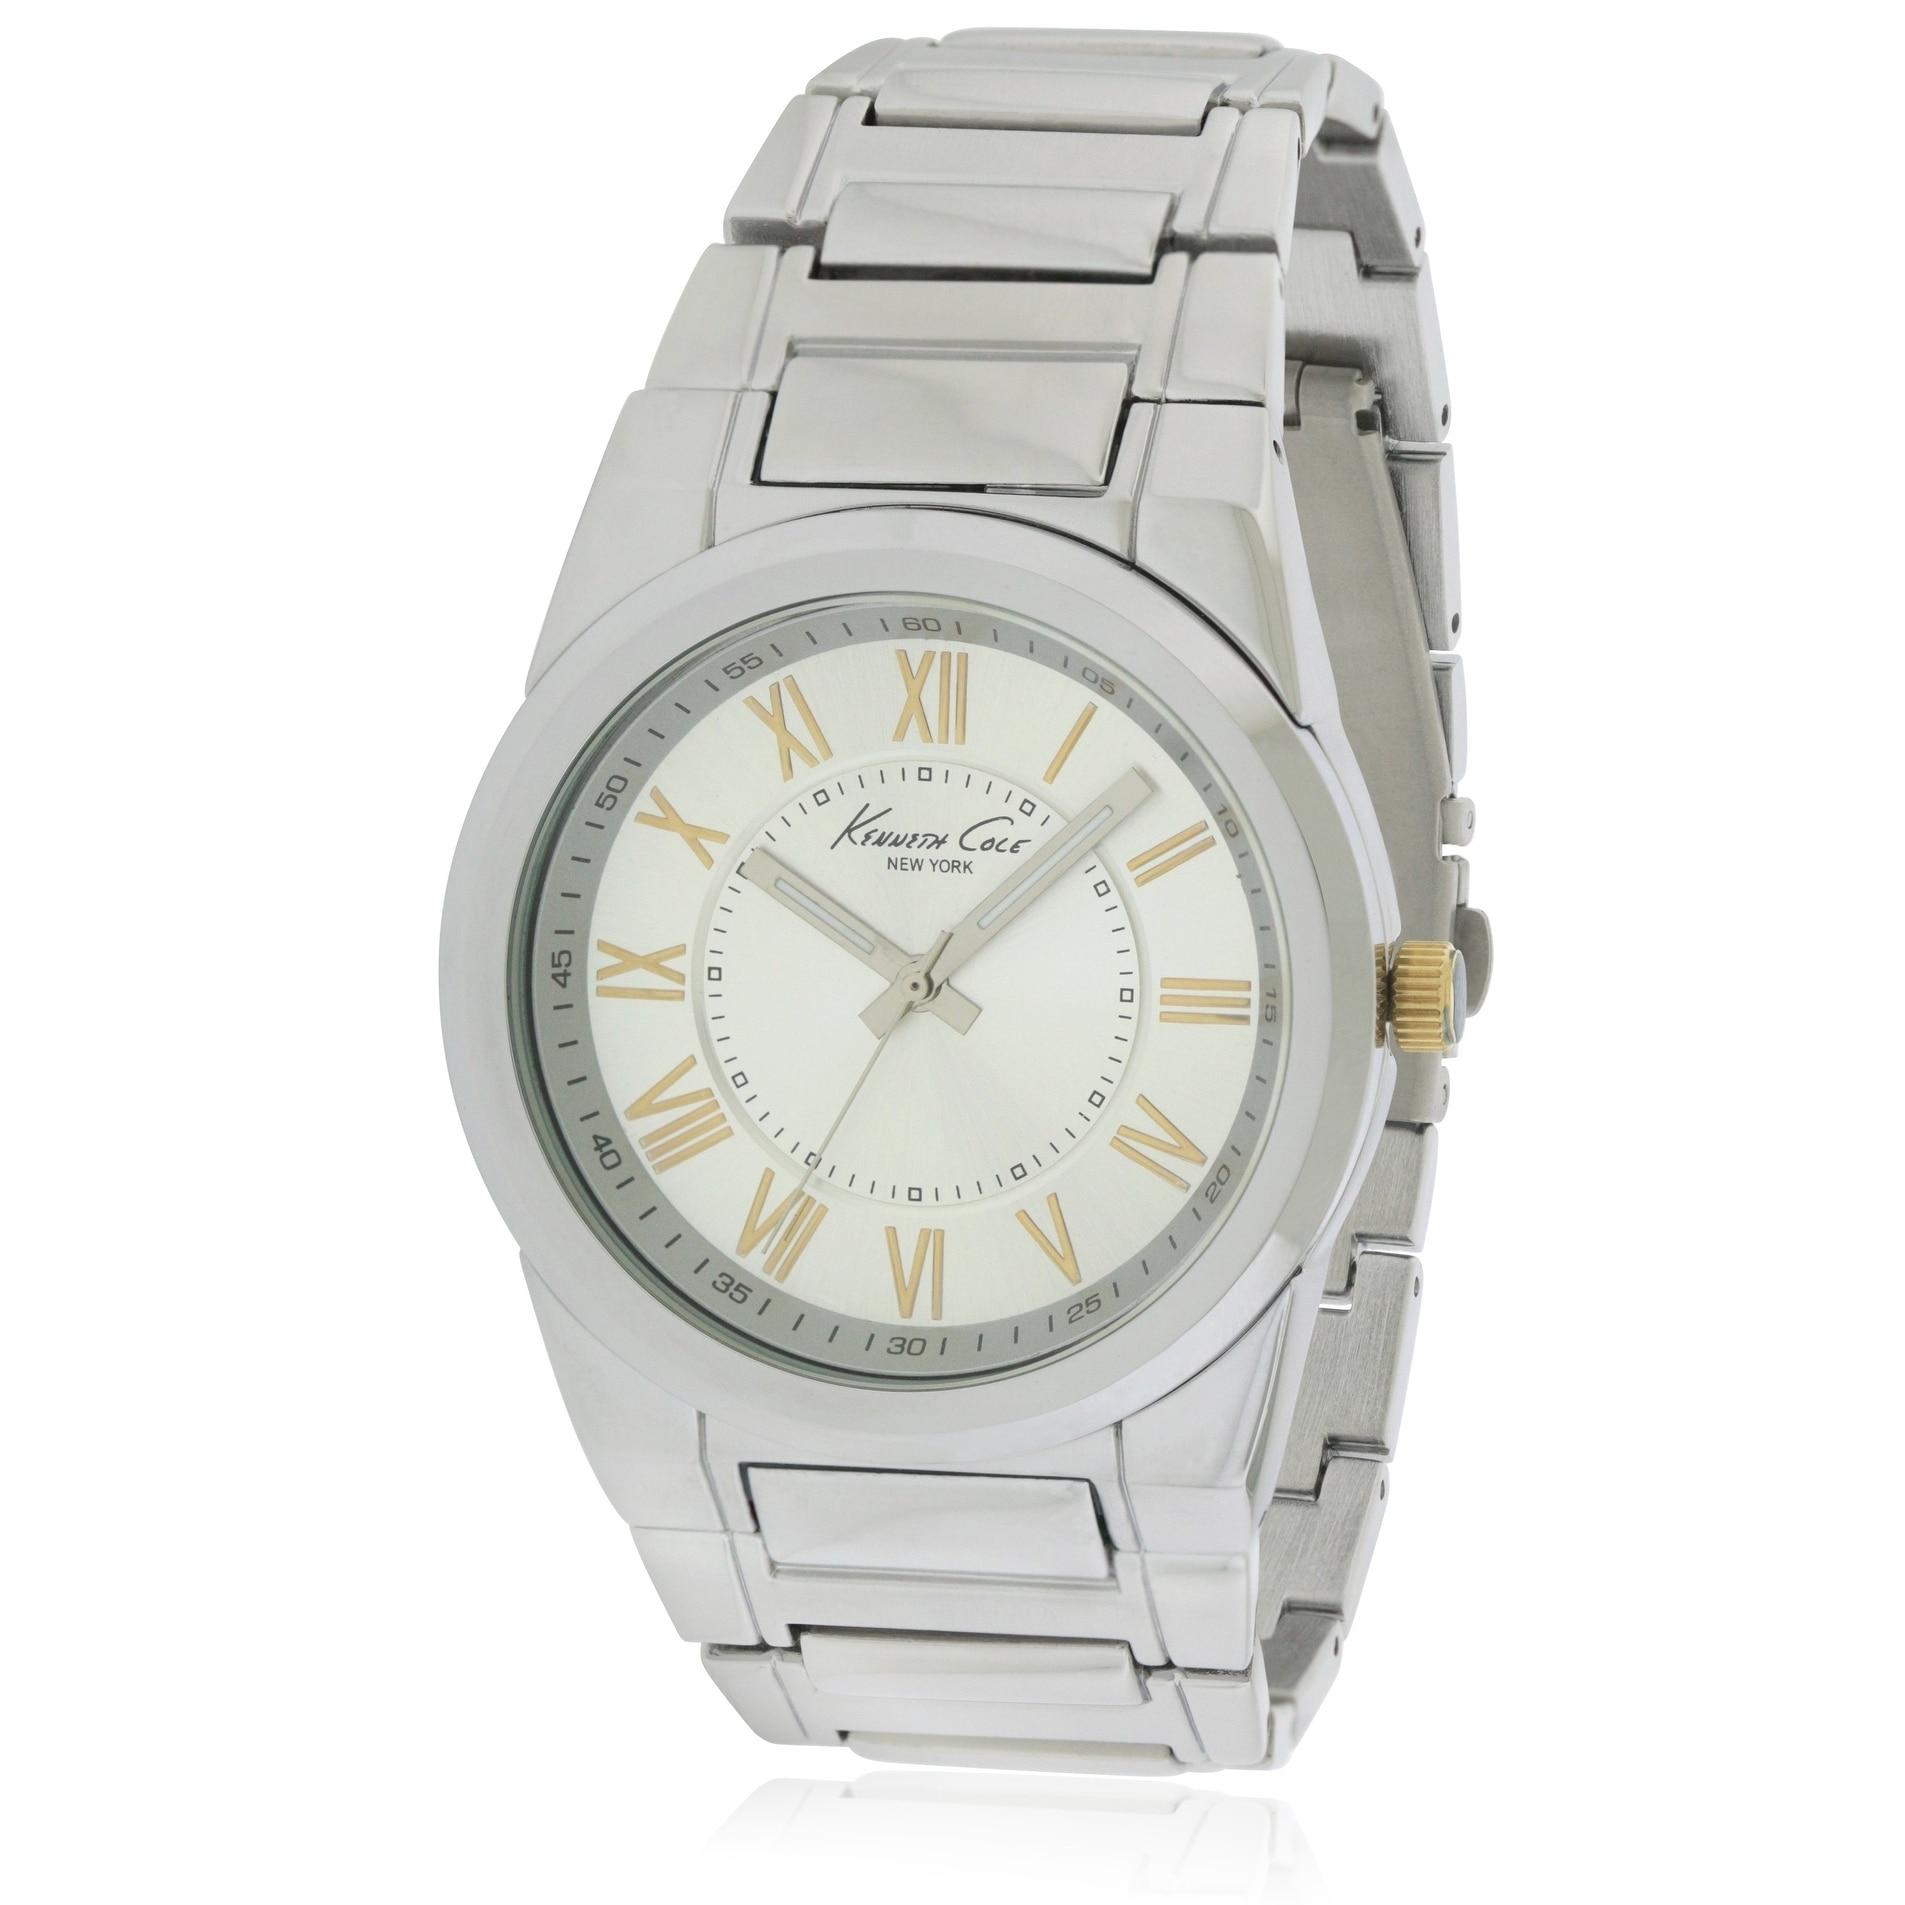 Kenneth Cole New York male Watch KCW3032, Men's, Silver, ...